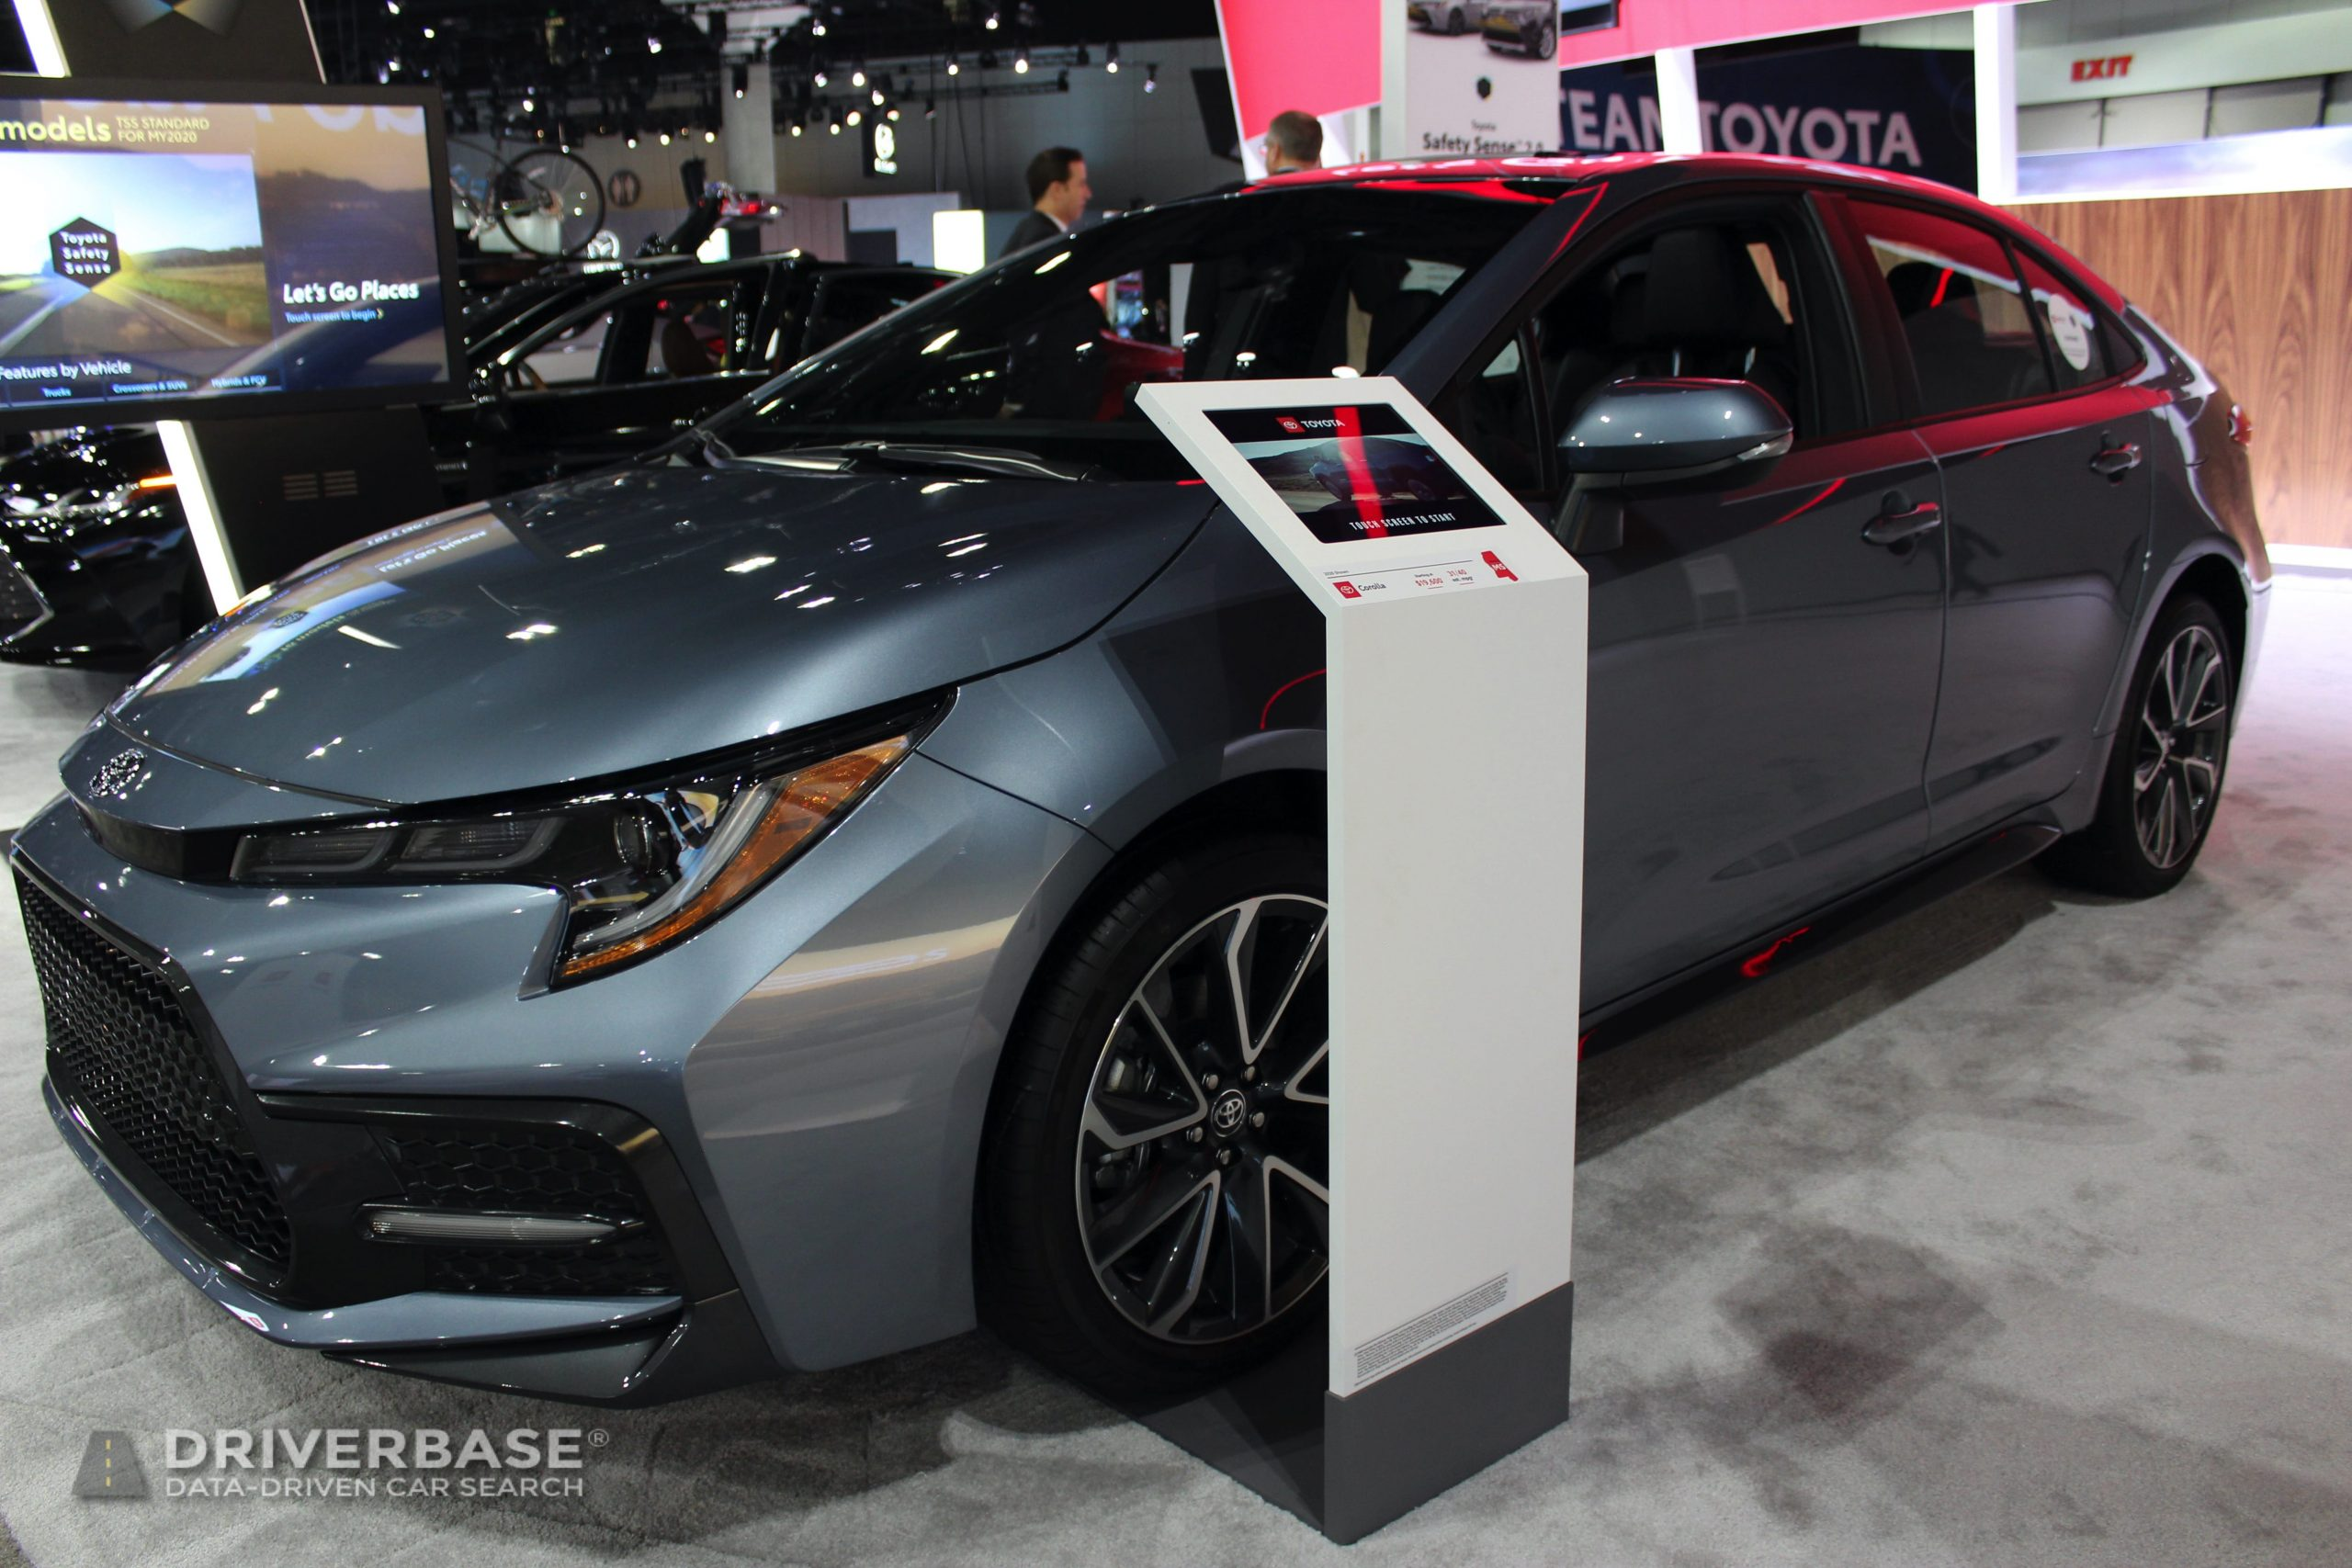 2020 Toyota Corolla XSE at the 2019 Los Angeles Auto Show